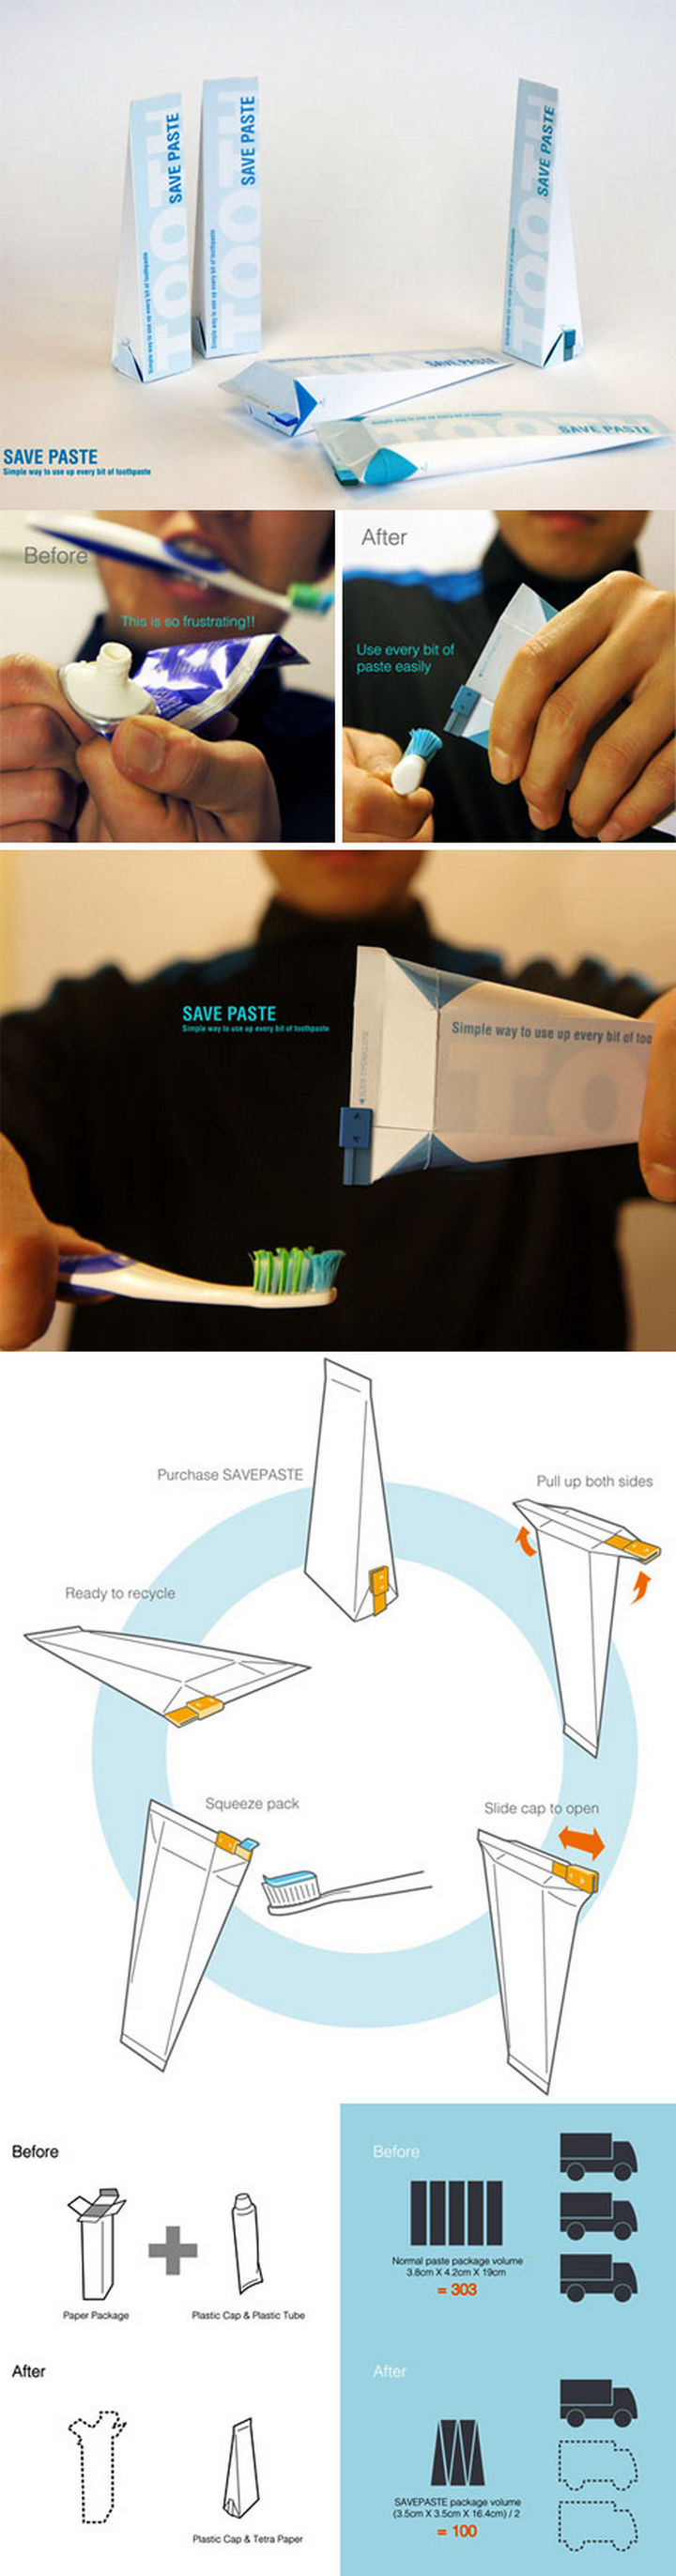 17 Clever Inventions - A brilliant toothpaste tube design.